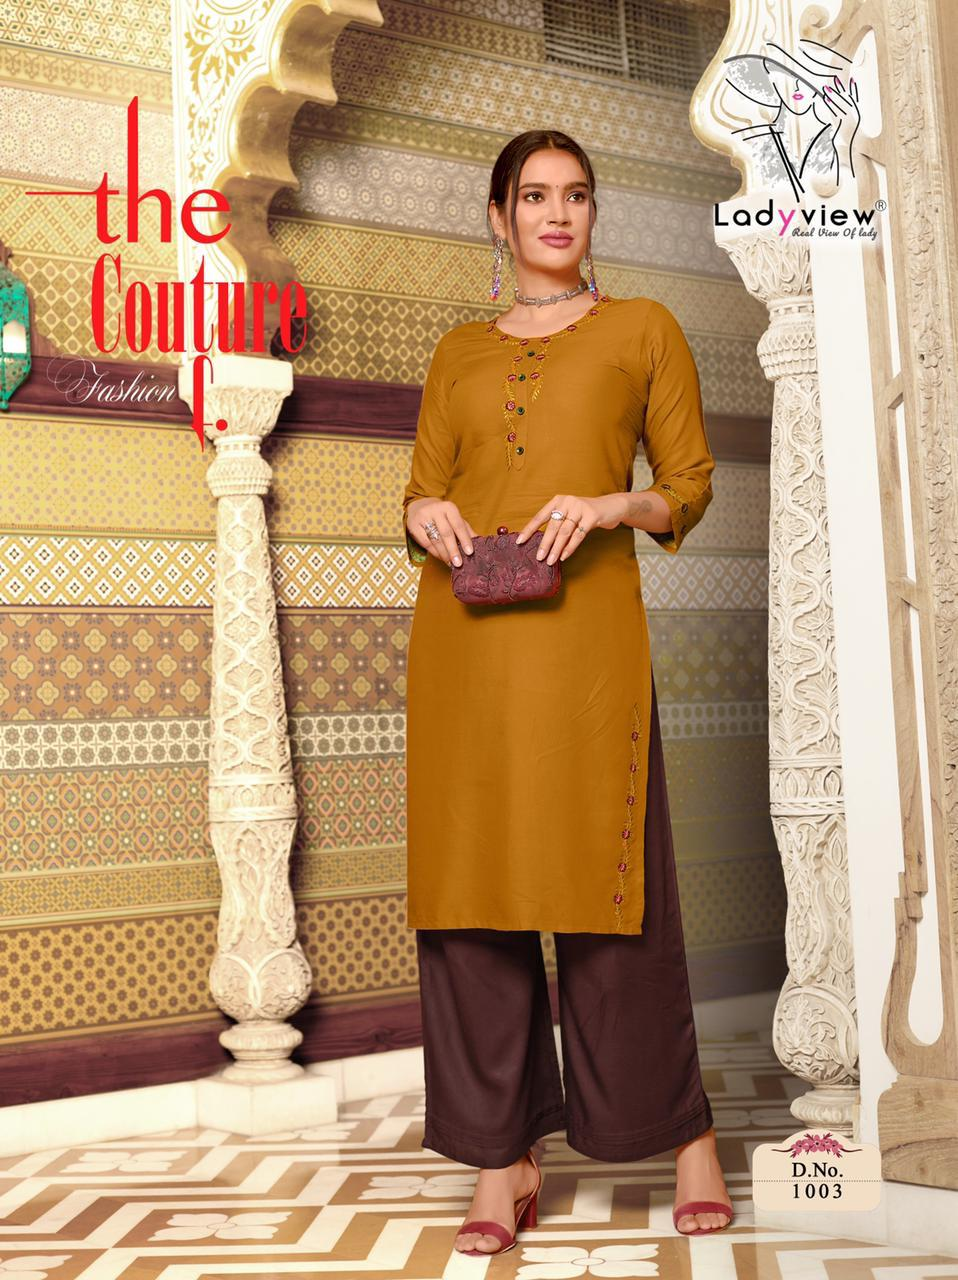 Ladyview Menka Vol.2 Rayon Embroided Daily Wear Designer Kurti Wholesale Available At Best Rates